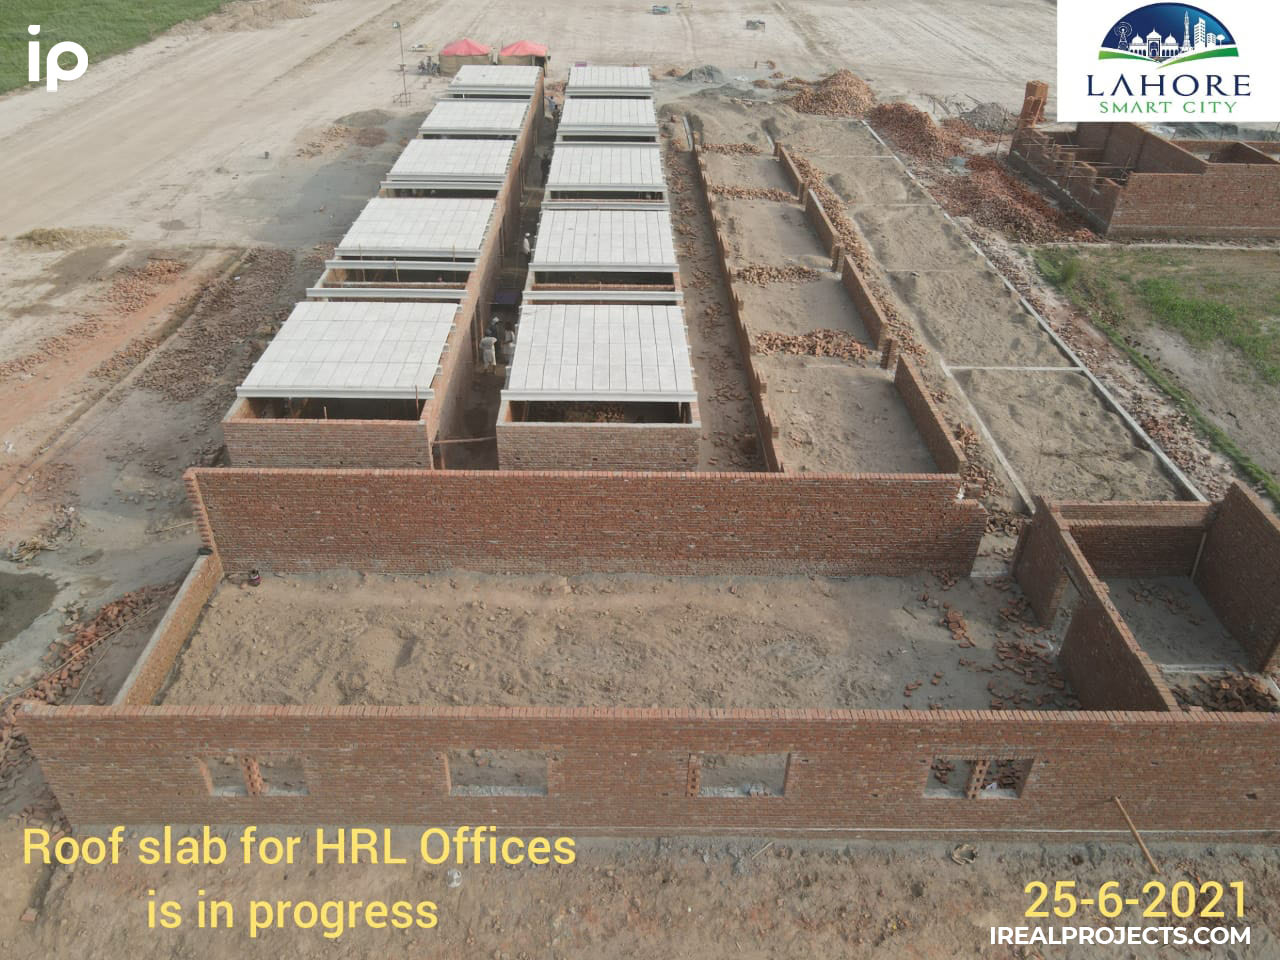 Site-offices-being-constructed-Lahore-Smart-City